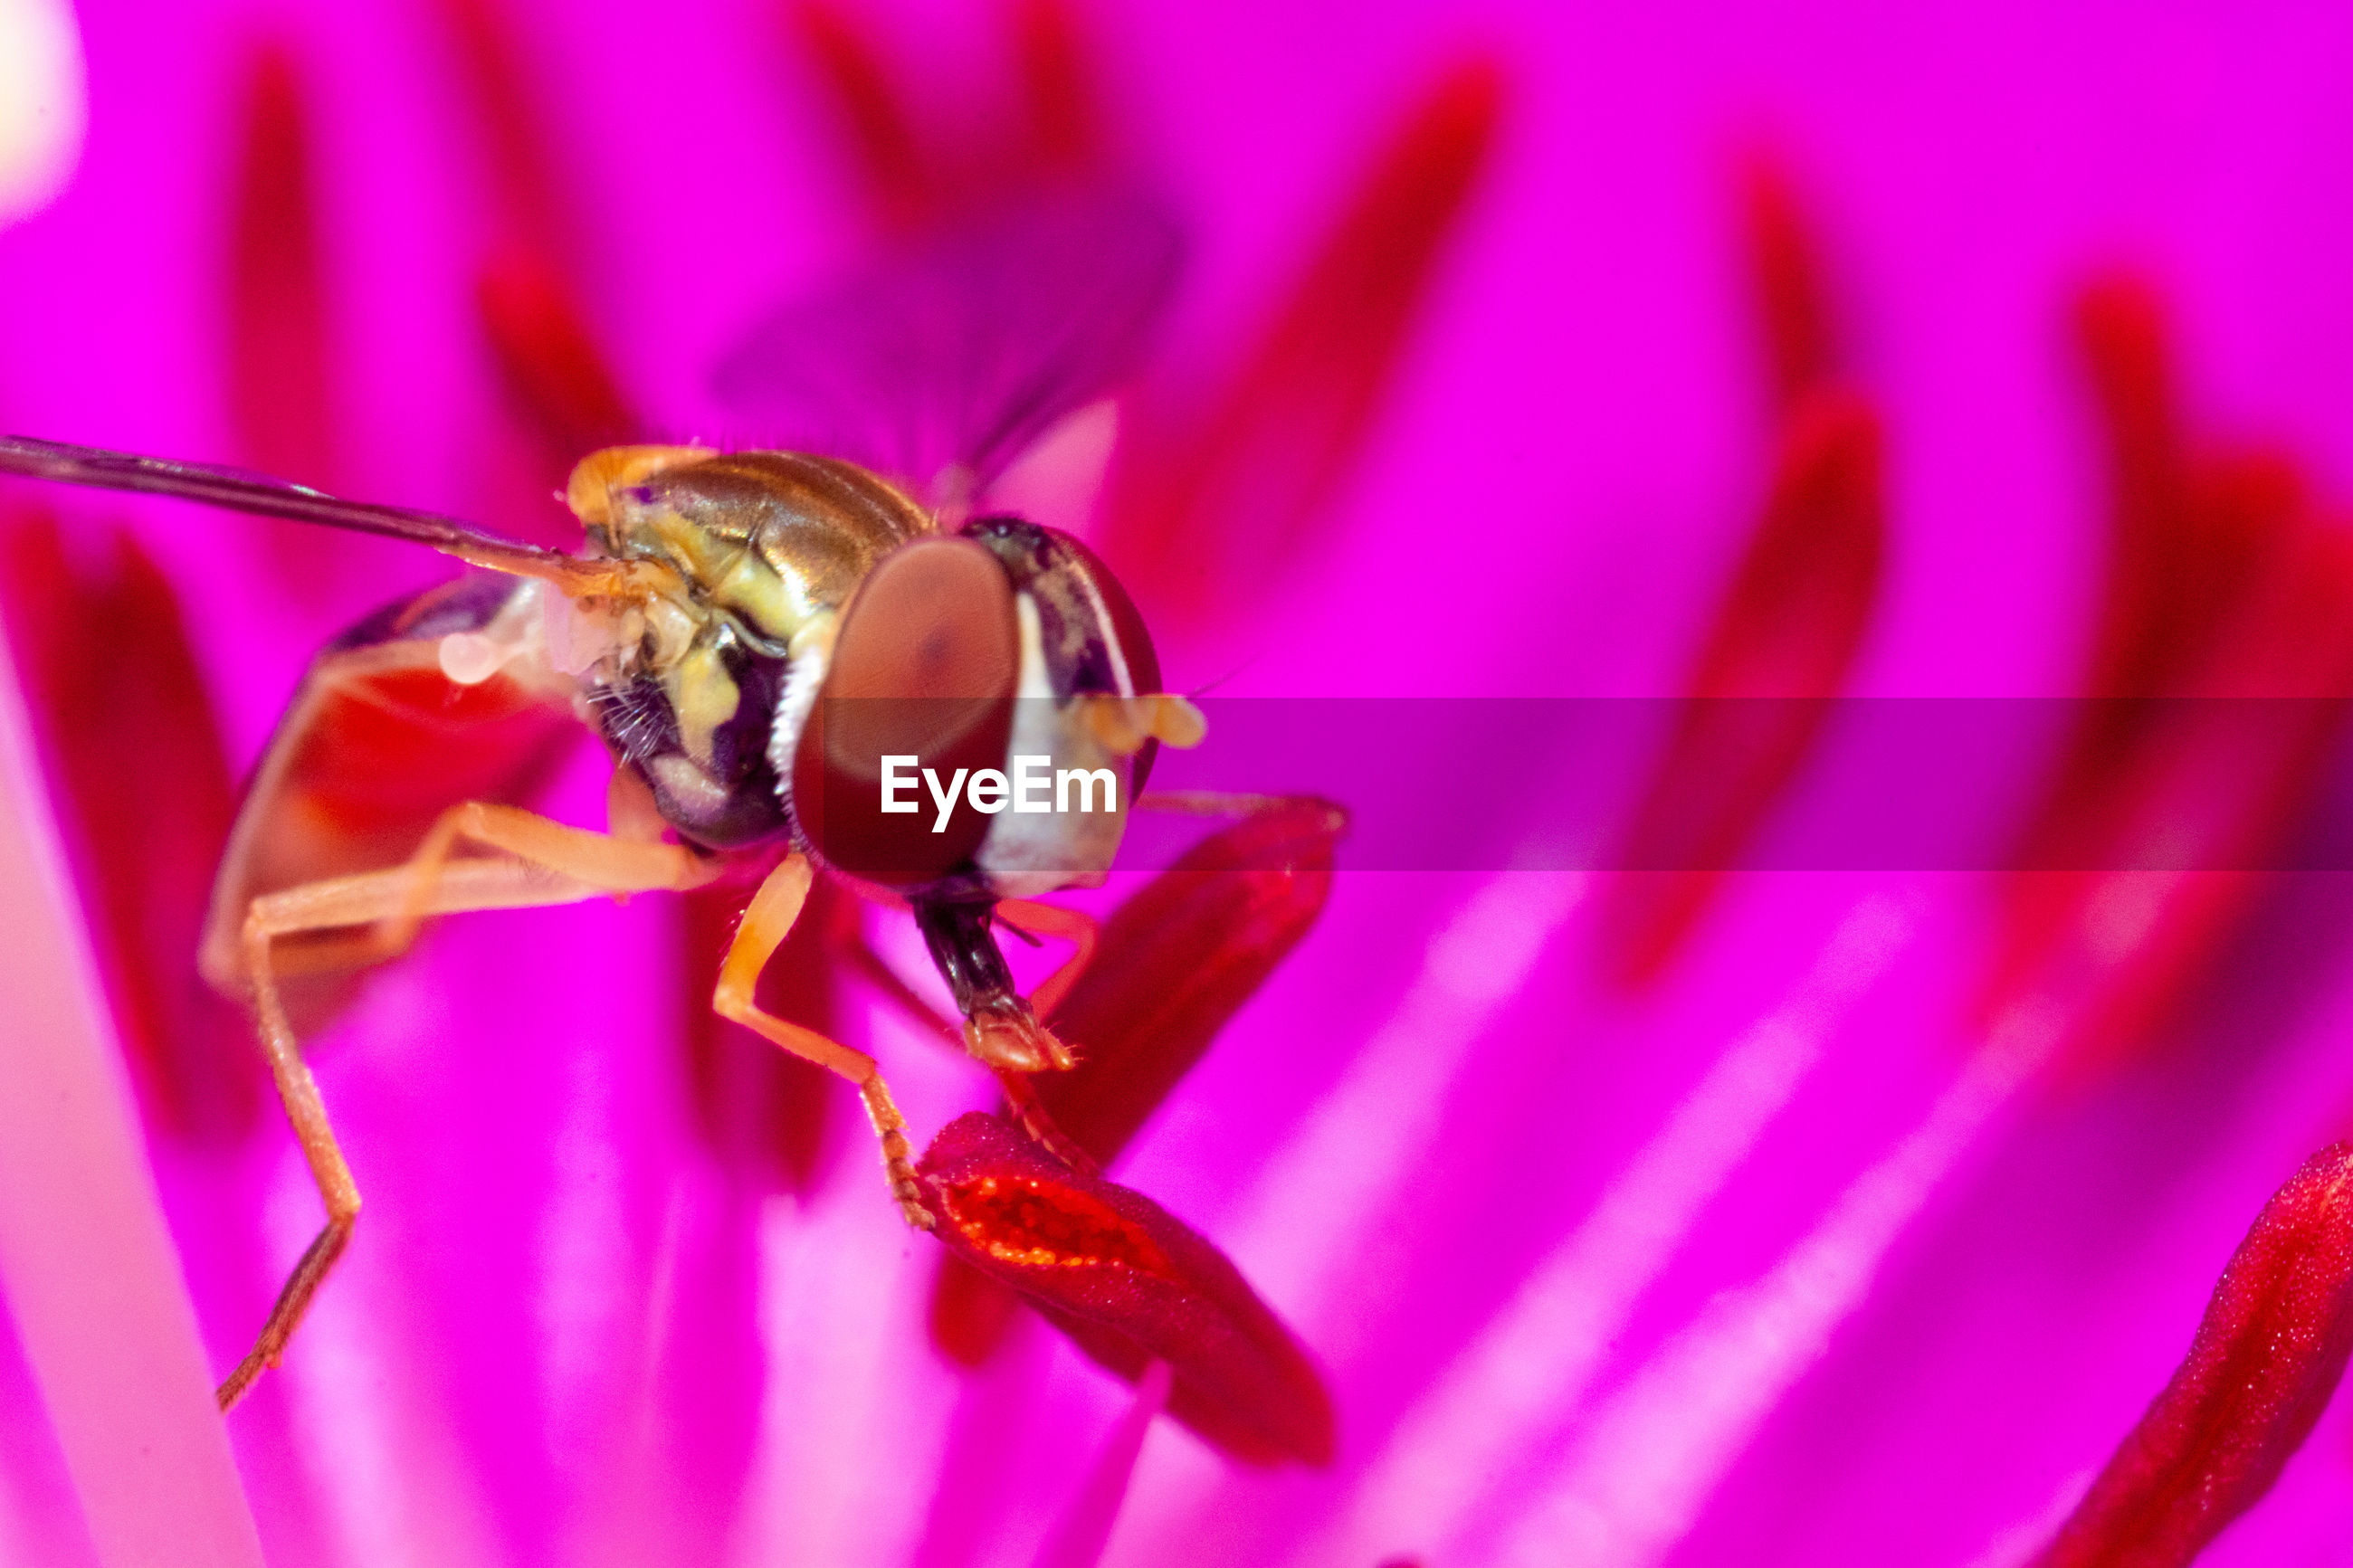 A syrphid fly on a rock purslane flower.